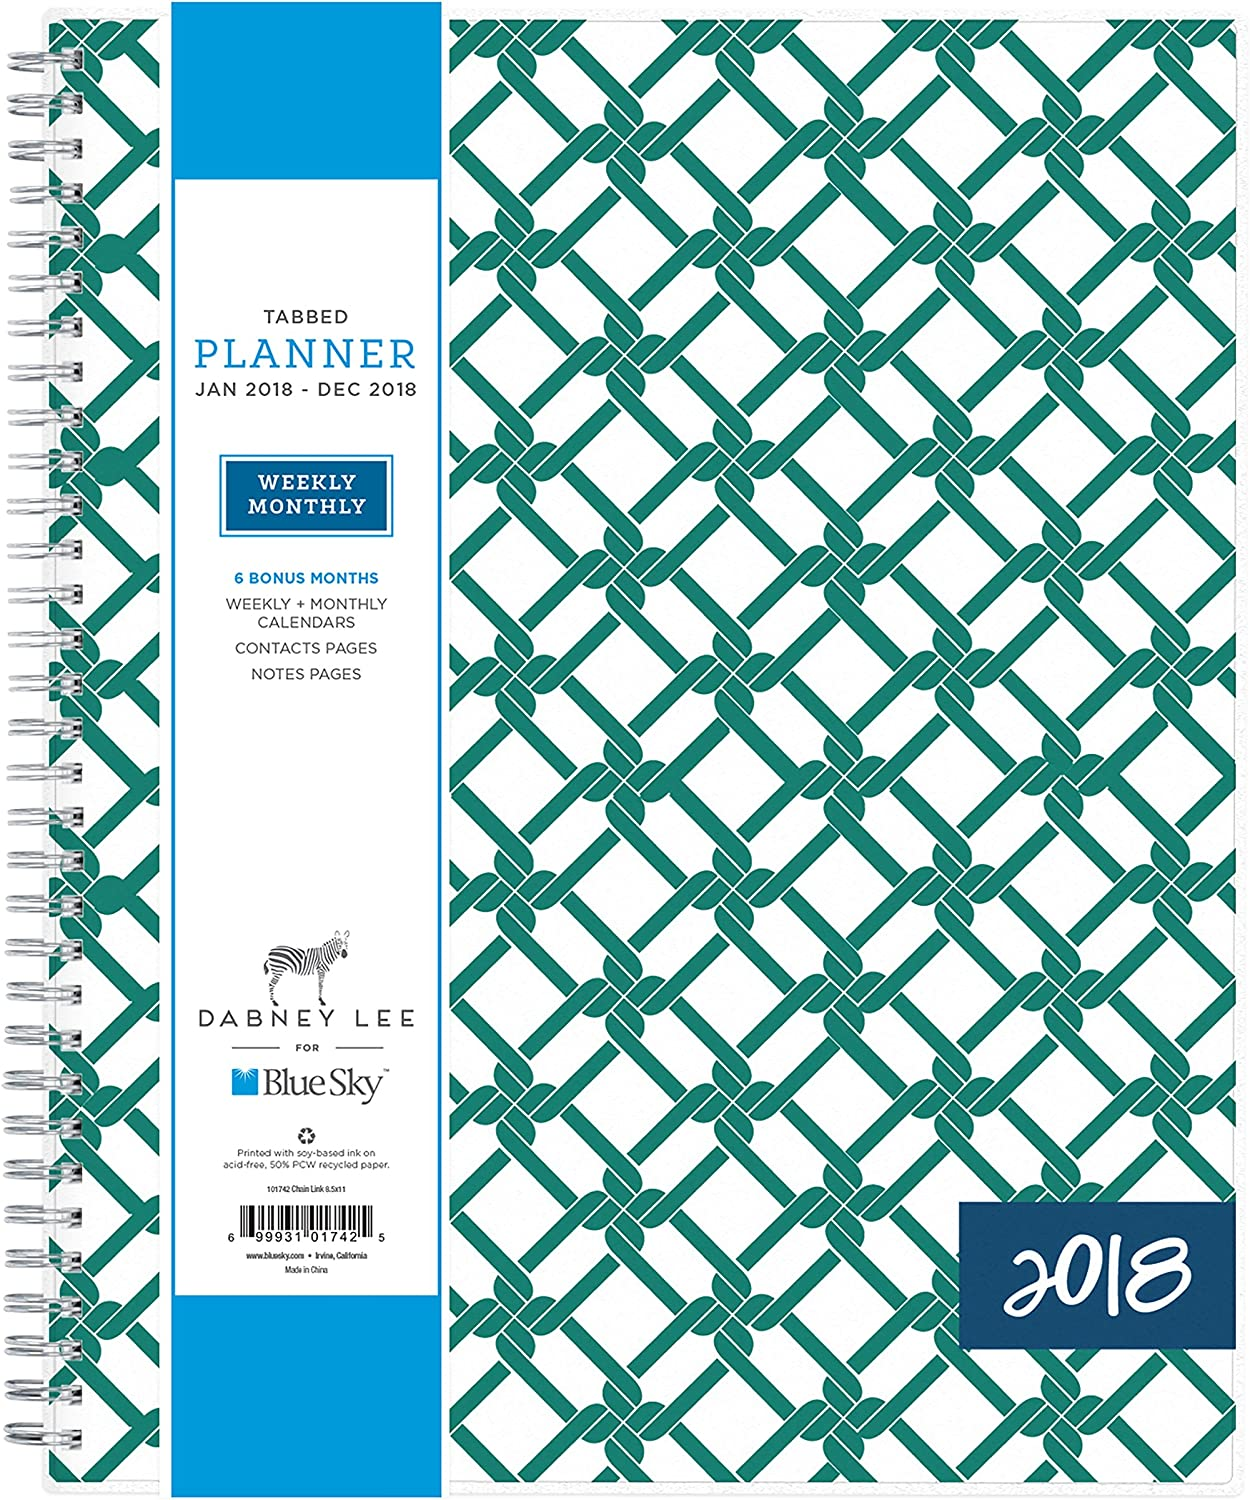 "Dabney Lee for Blue Sky 2018 Weekly & Monthly Planner, Twin-Wire Binding, 8.5"" x 11"", Chain Link"